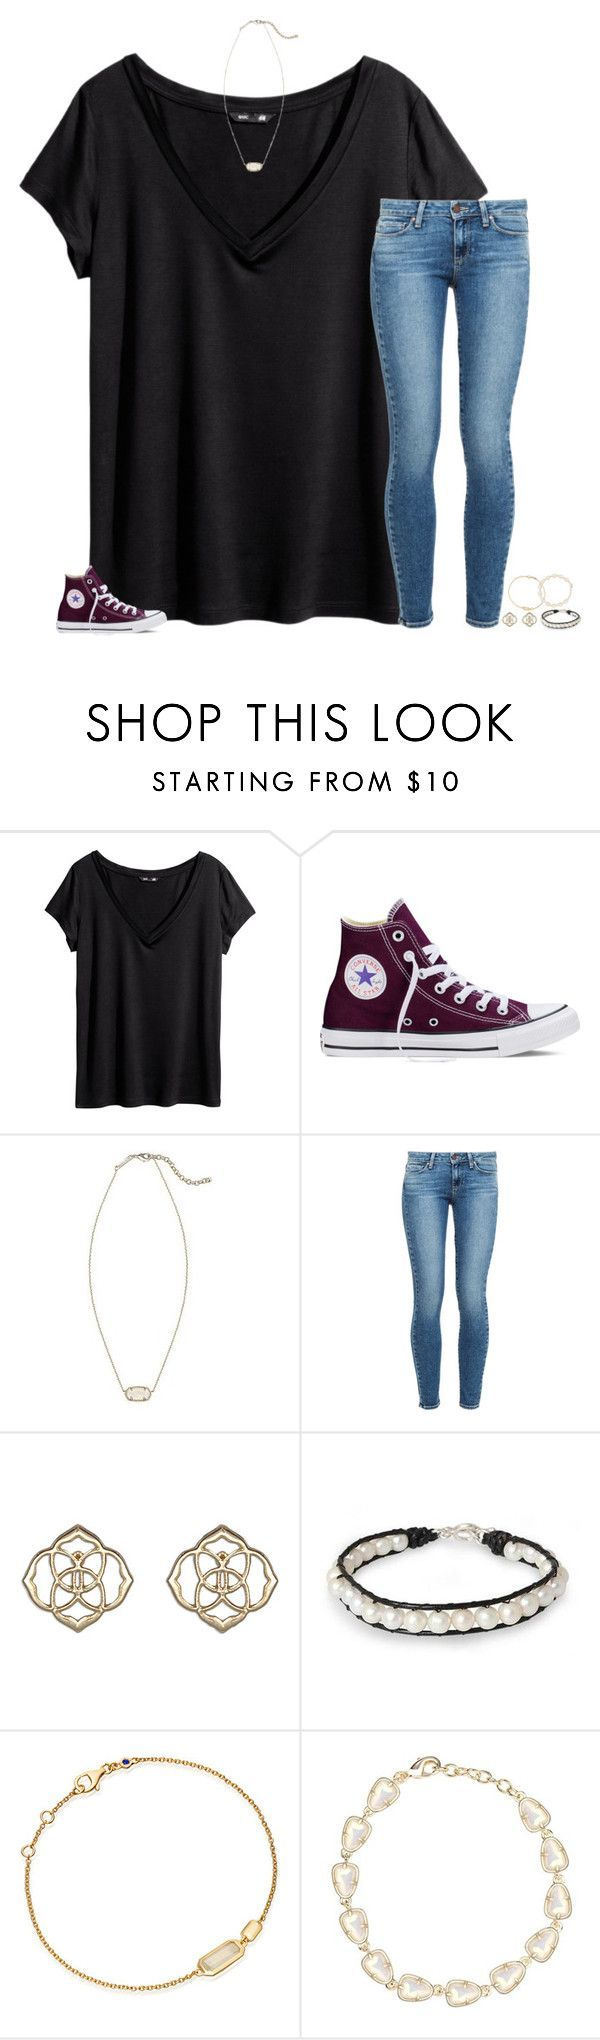 """"""""""" by secfashion13 ❤ liked on Polyvore featuring H&M, Converse, Kendra Scott, Paige Denim, NOVICA and Astley Clarke"""